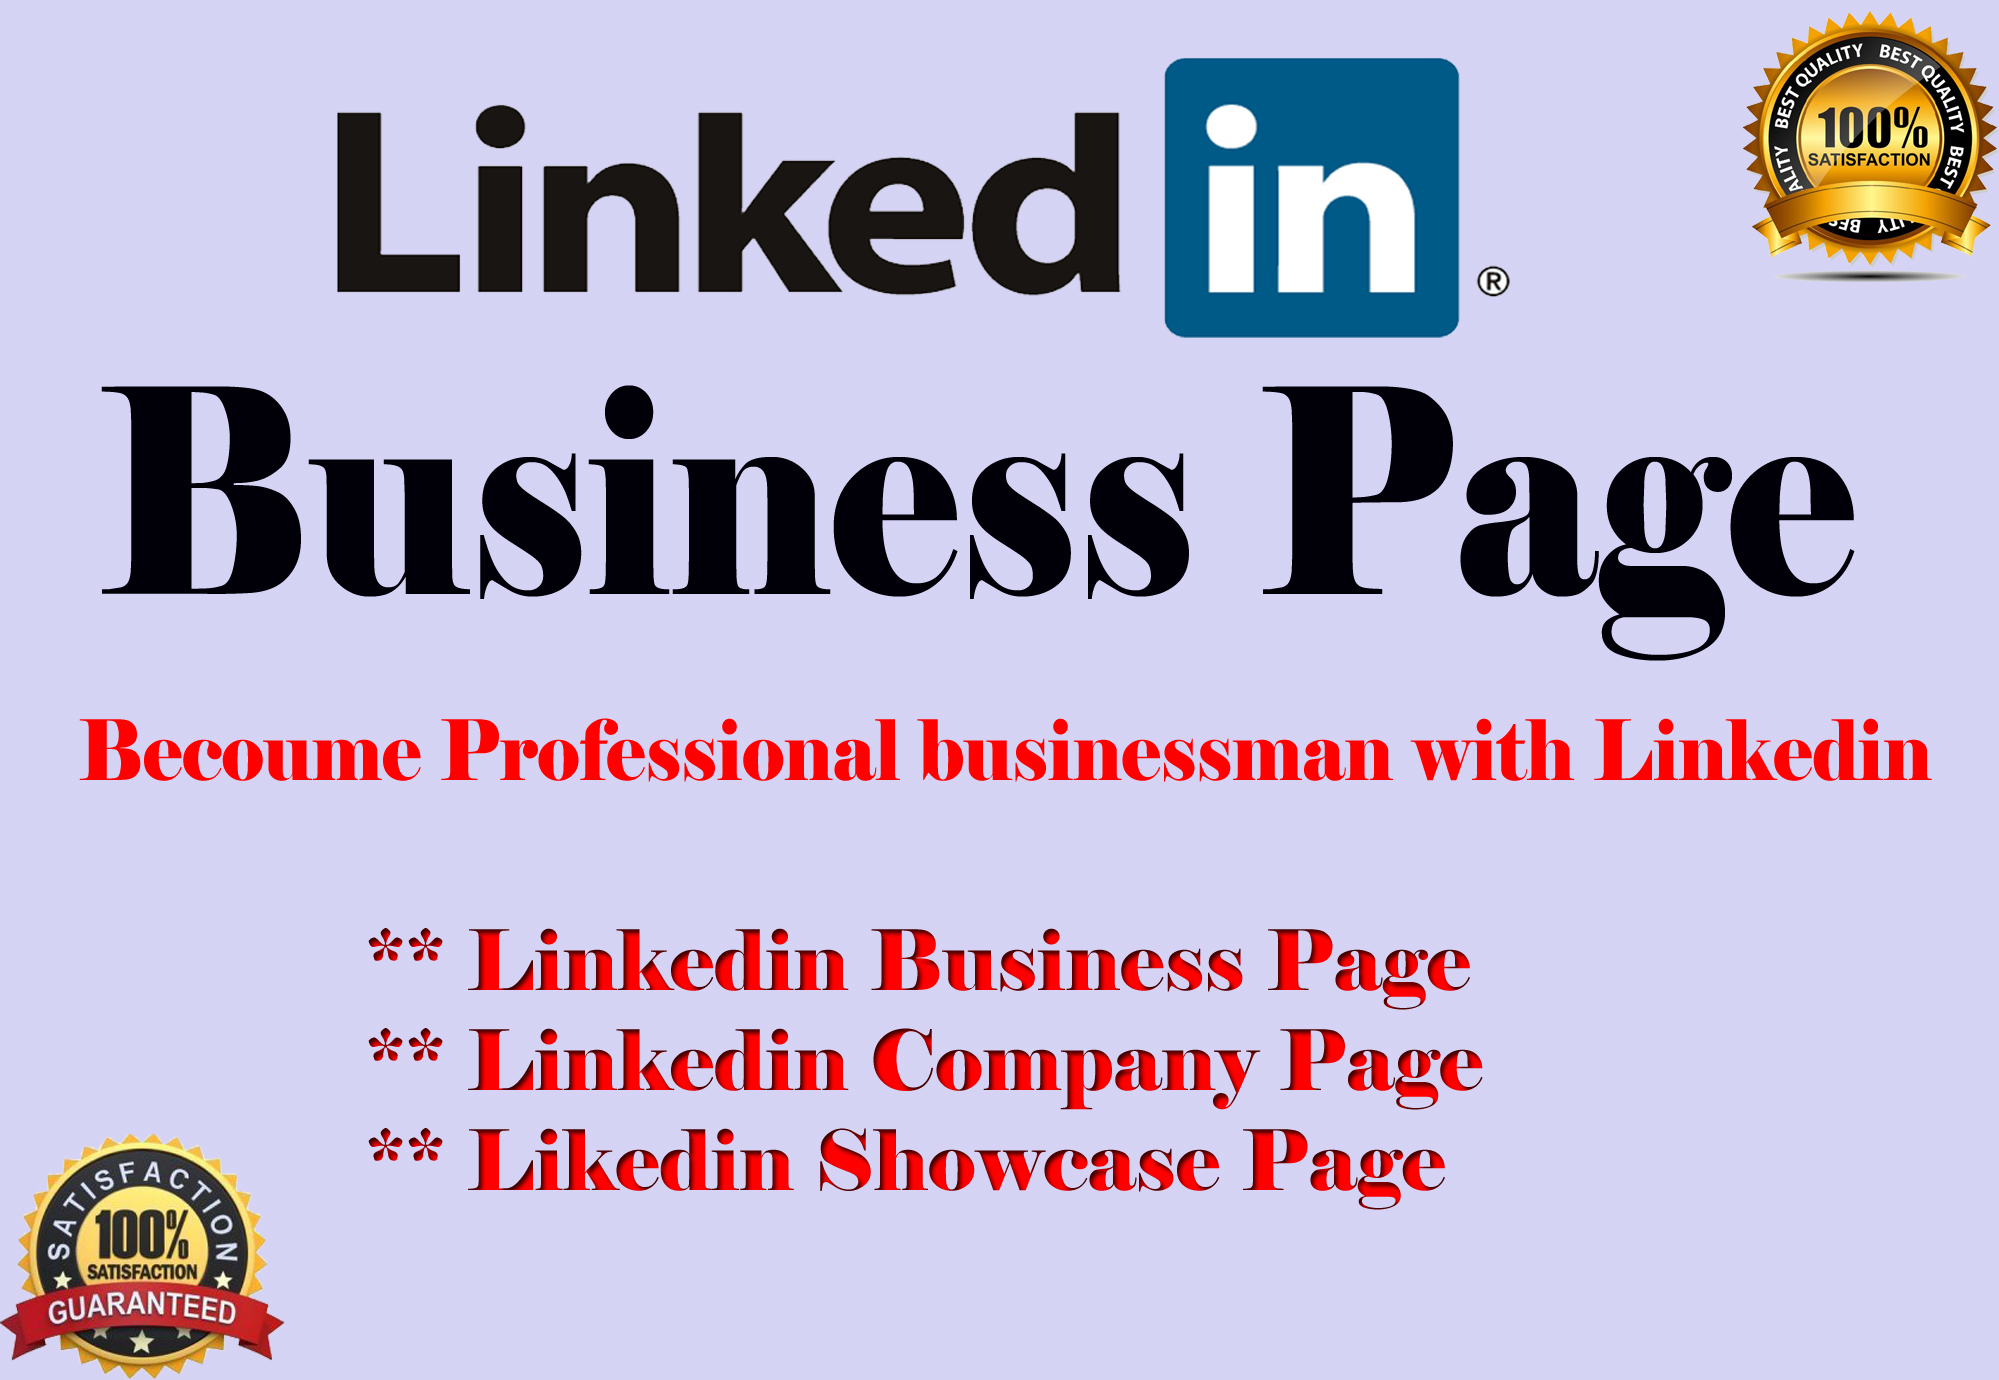 Create LinkedIn business page and company page